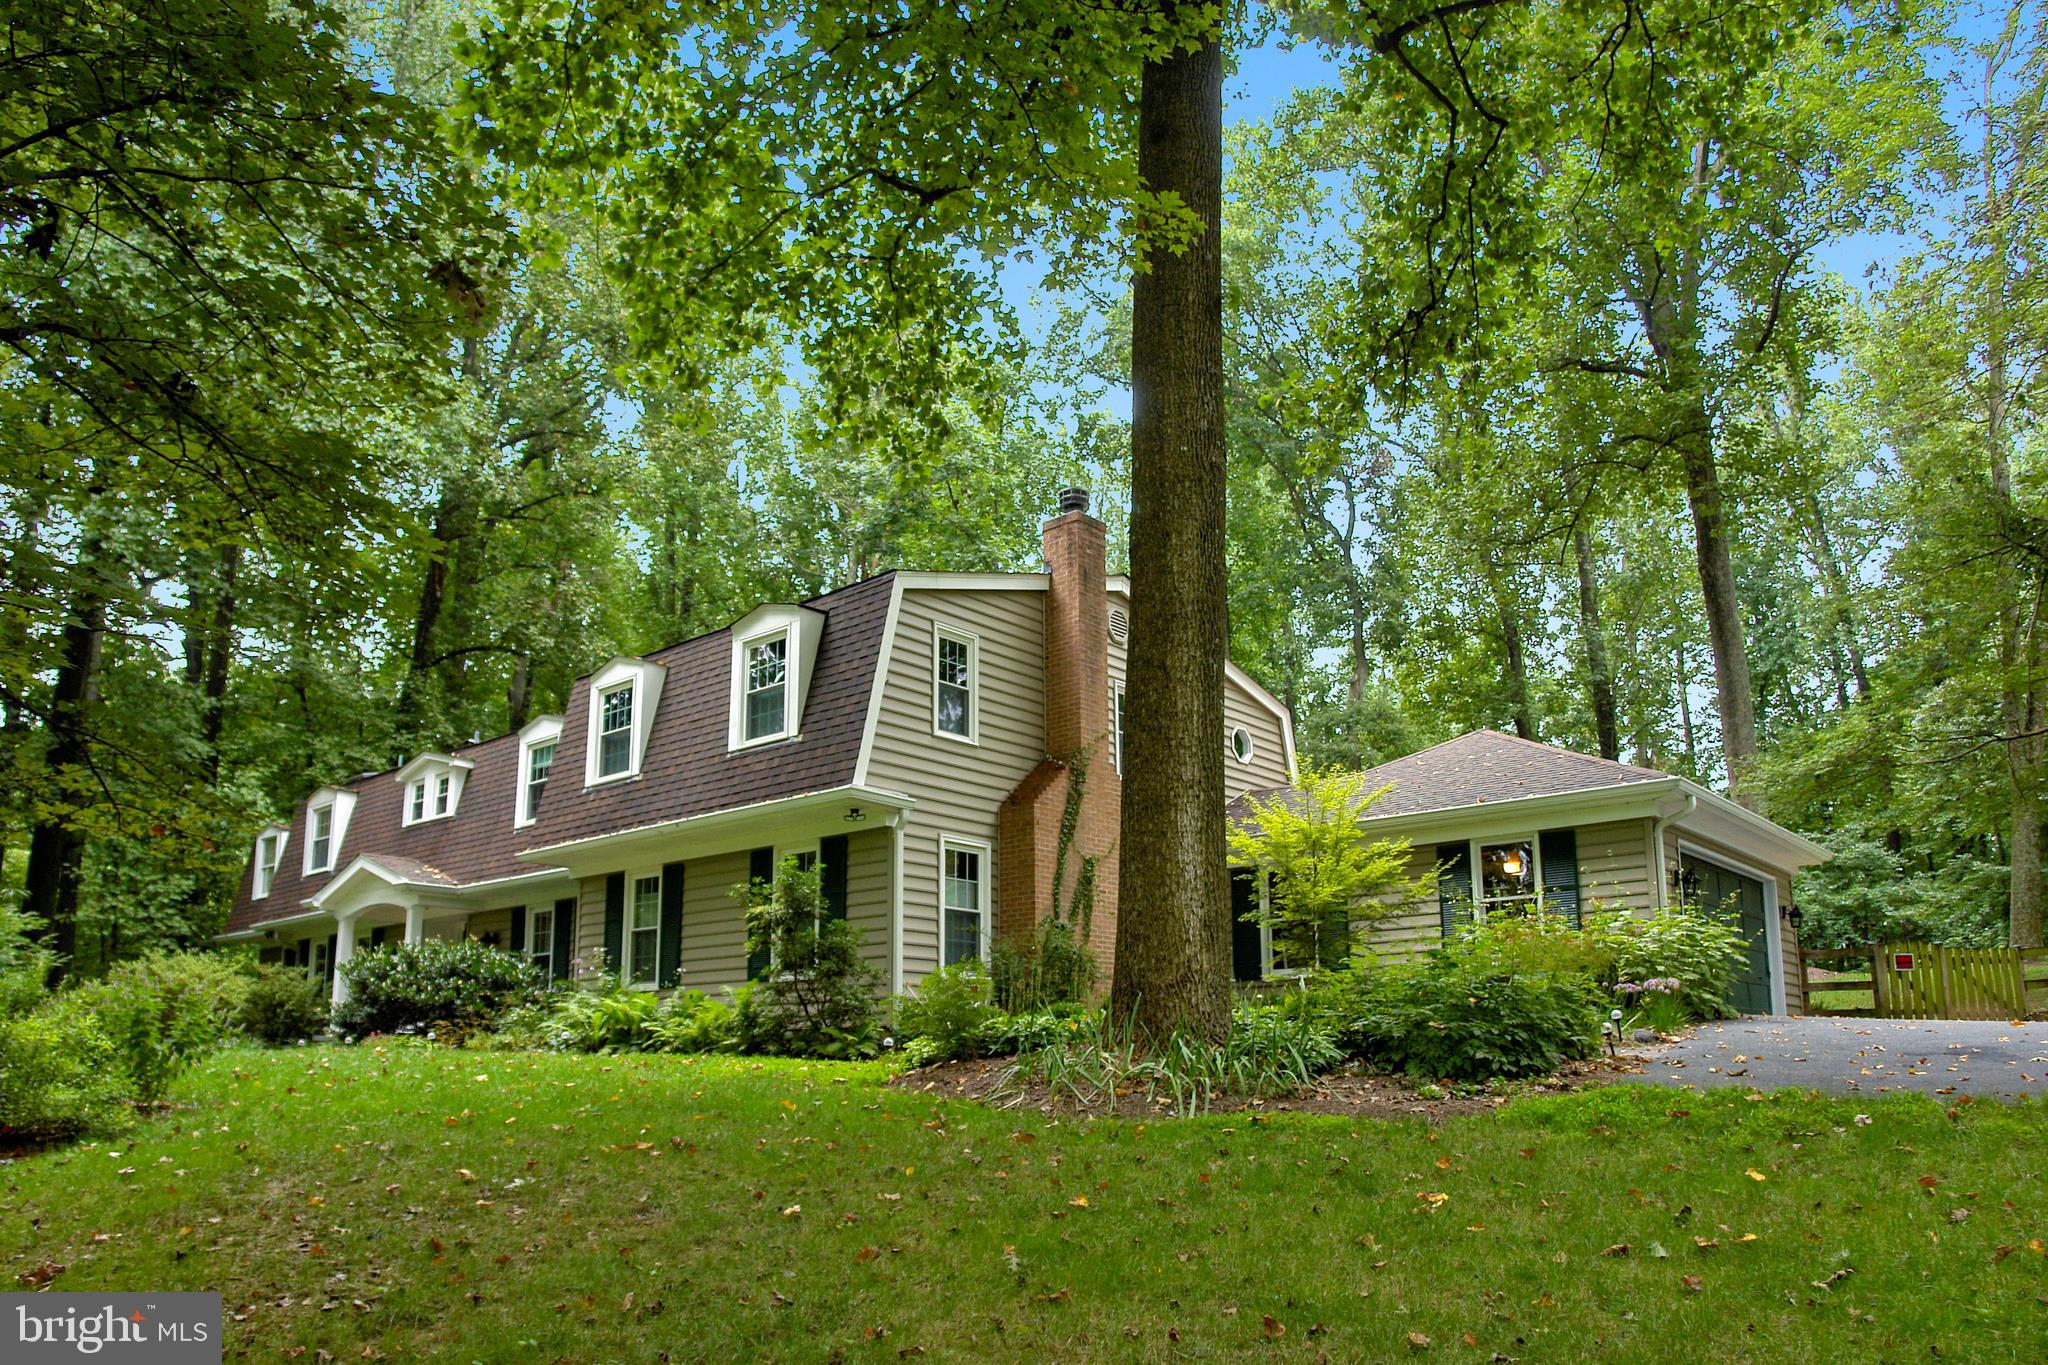 9420 BRINK ROAD, LAYTONSVILLE, MD 20882